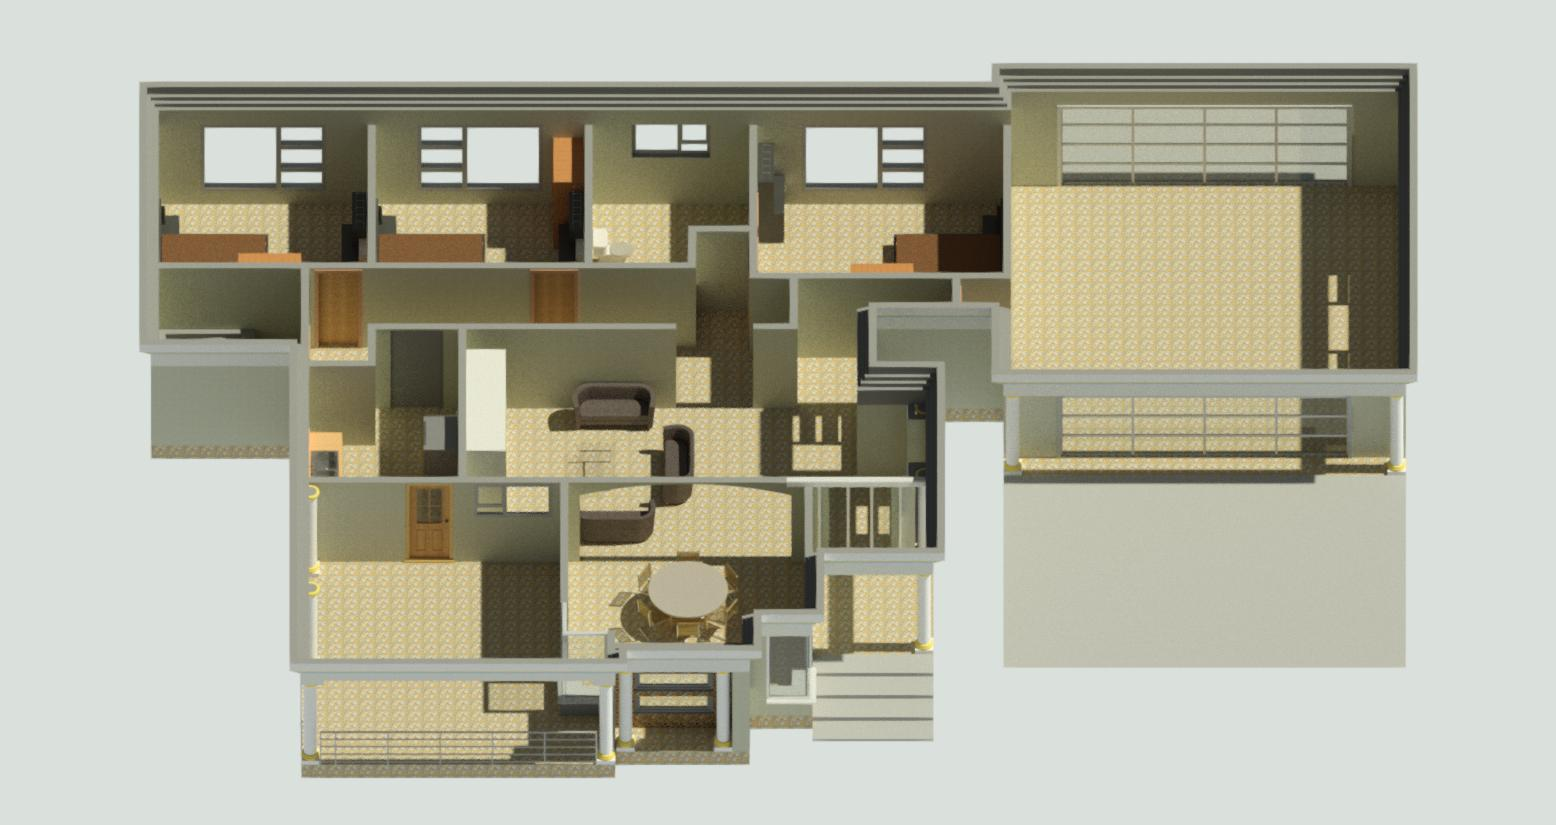 House plans in limpopo south african modern house plans house plans south africa